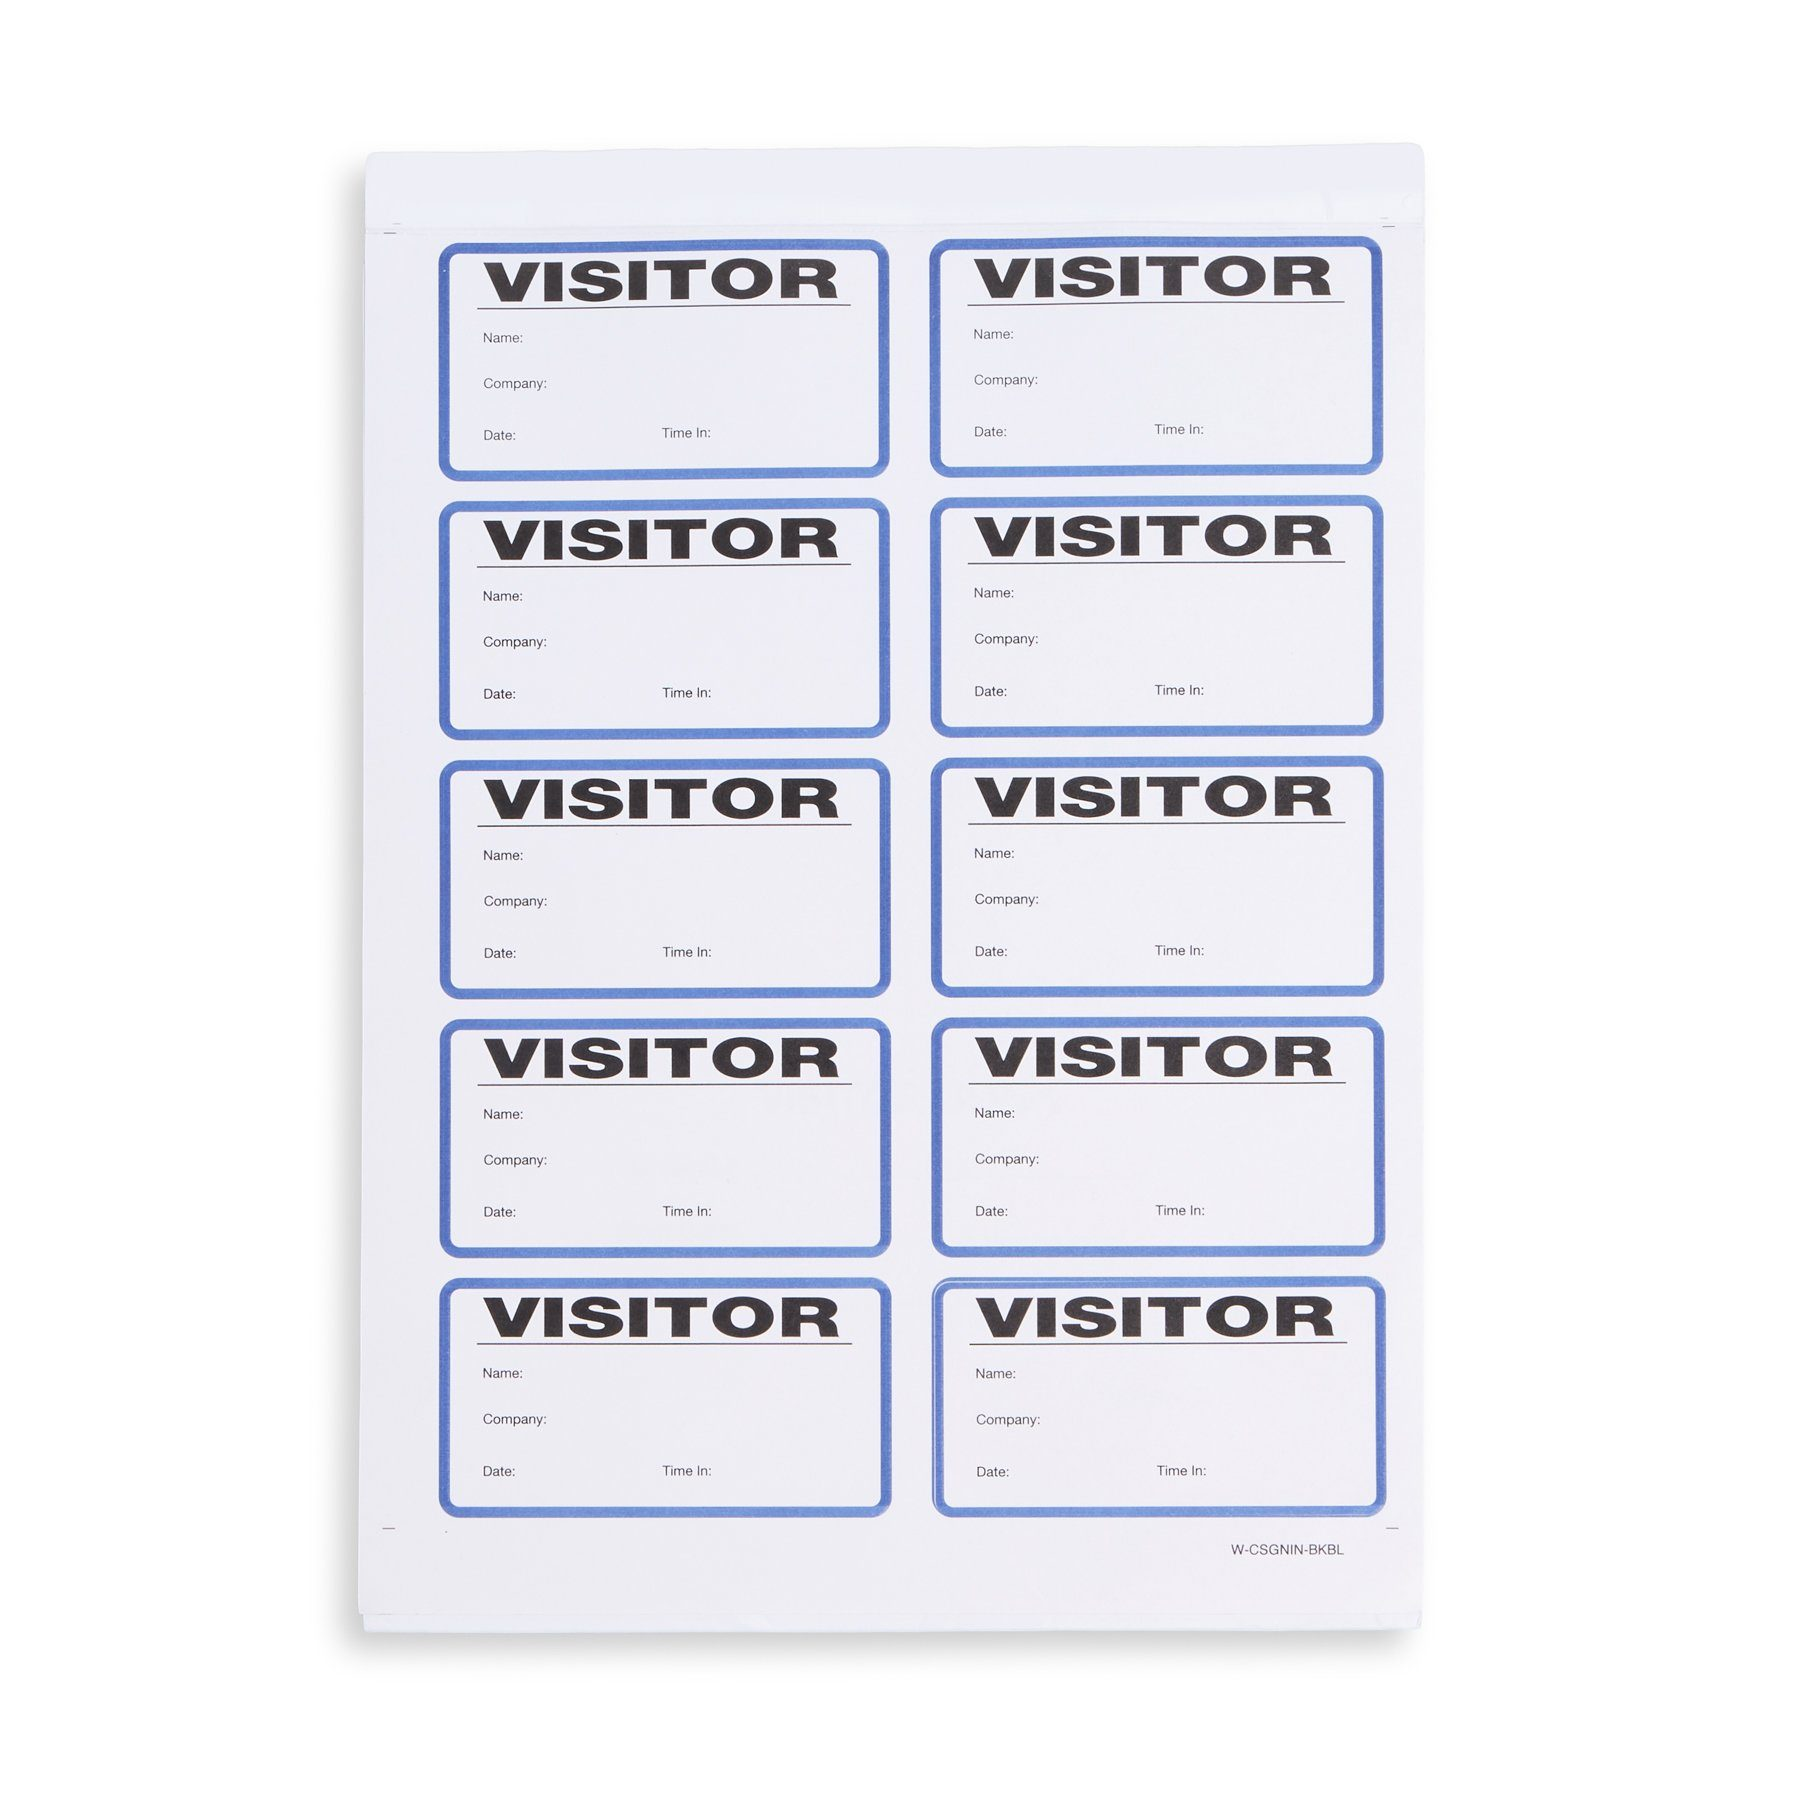 150//Box White C-Line 97030 Visitor Badges with Registry Log 3 1//2 x 2